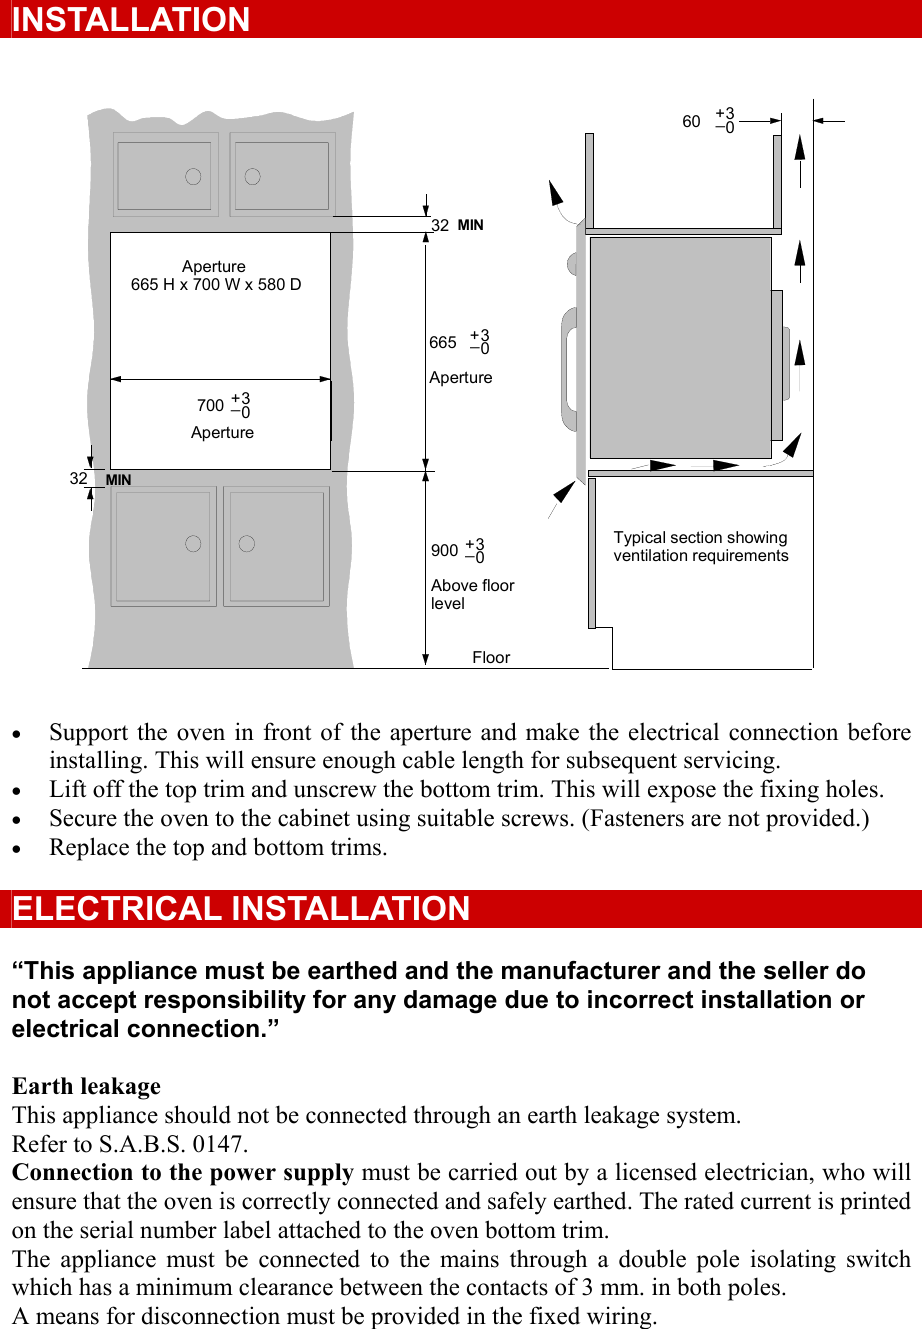 Defy Thermofan Oven Wiring Diagram